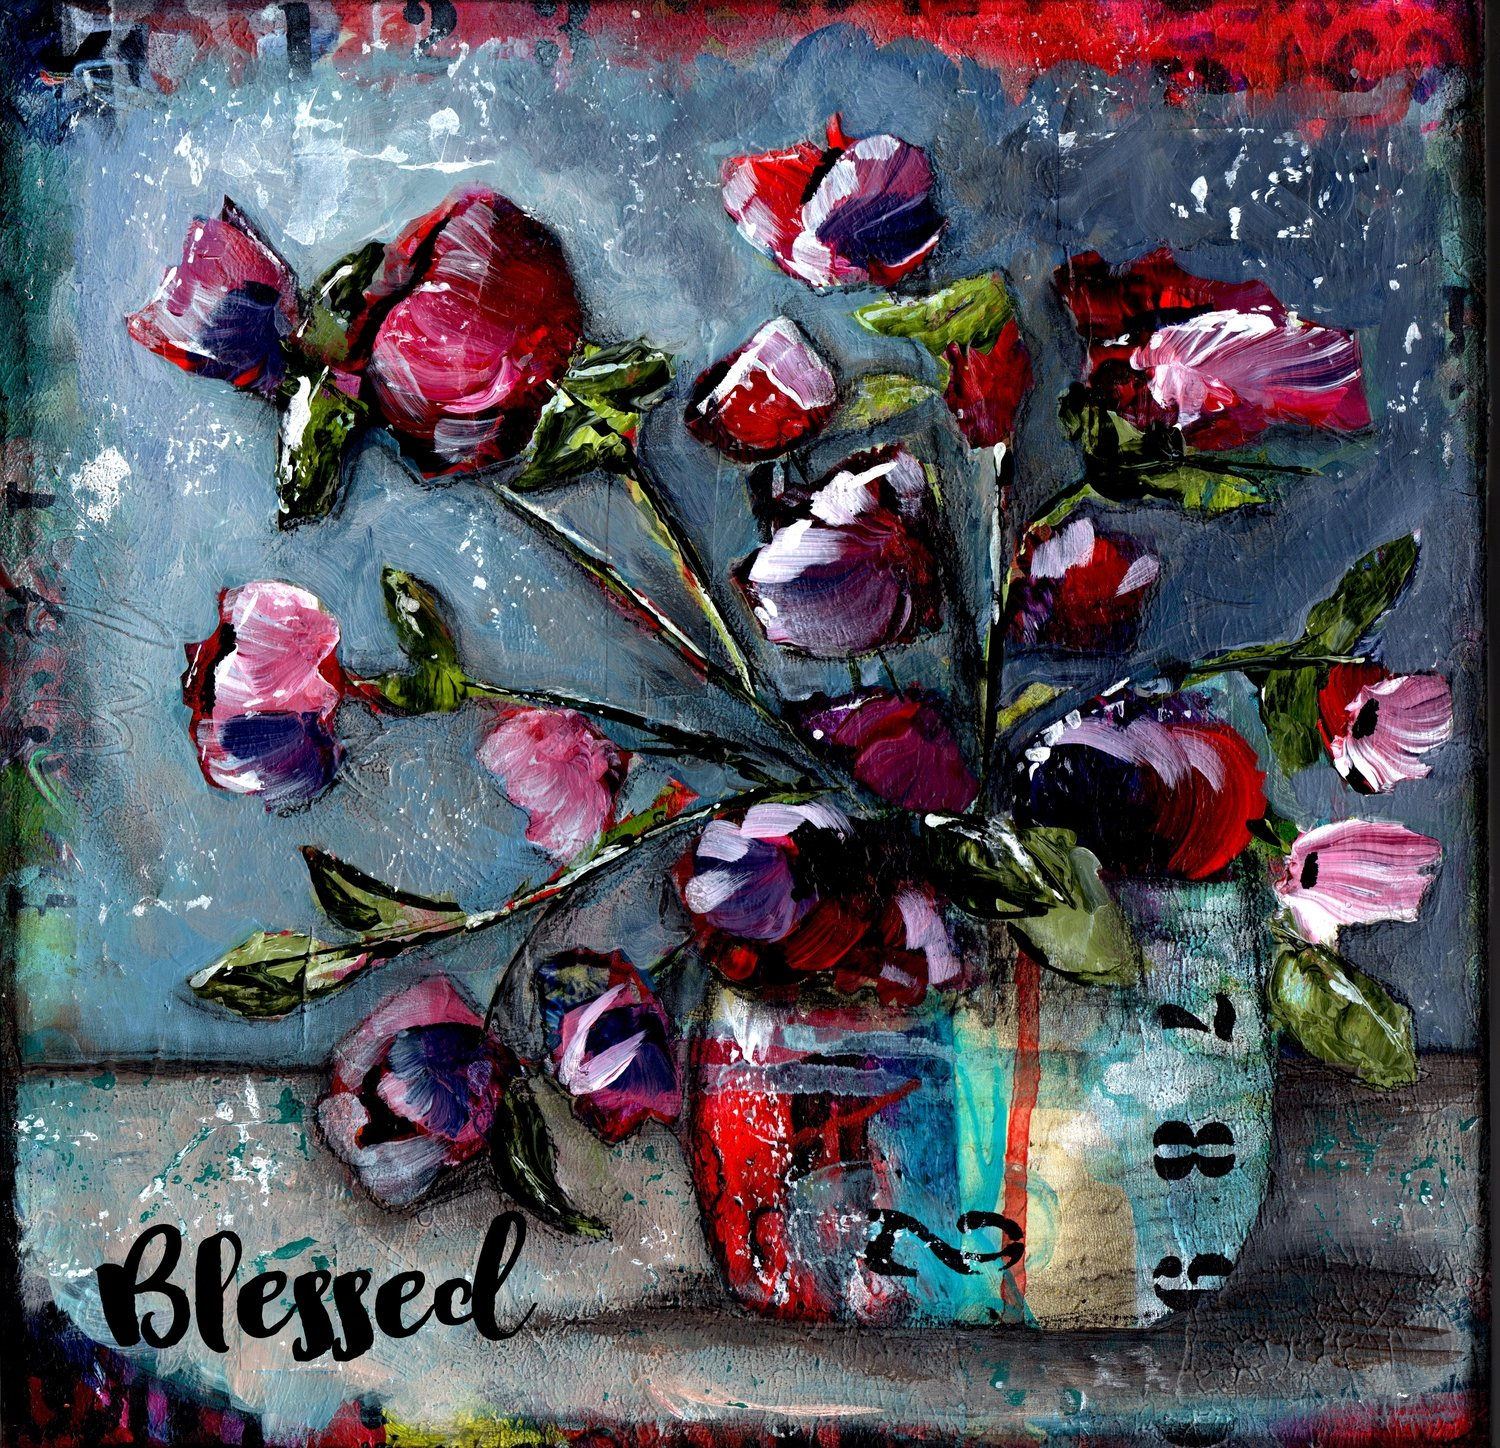 Blessed grungy floral print on wood